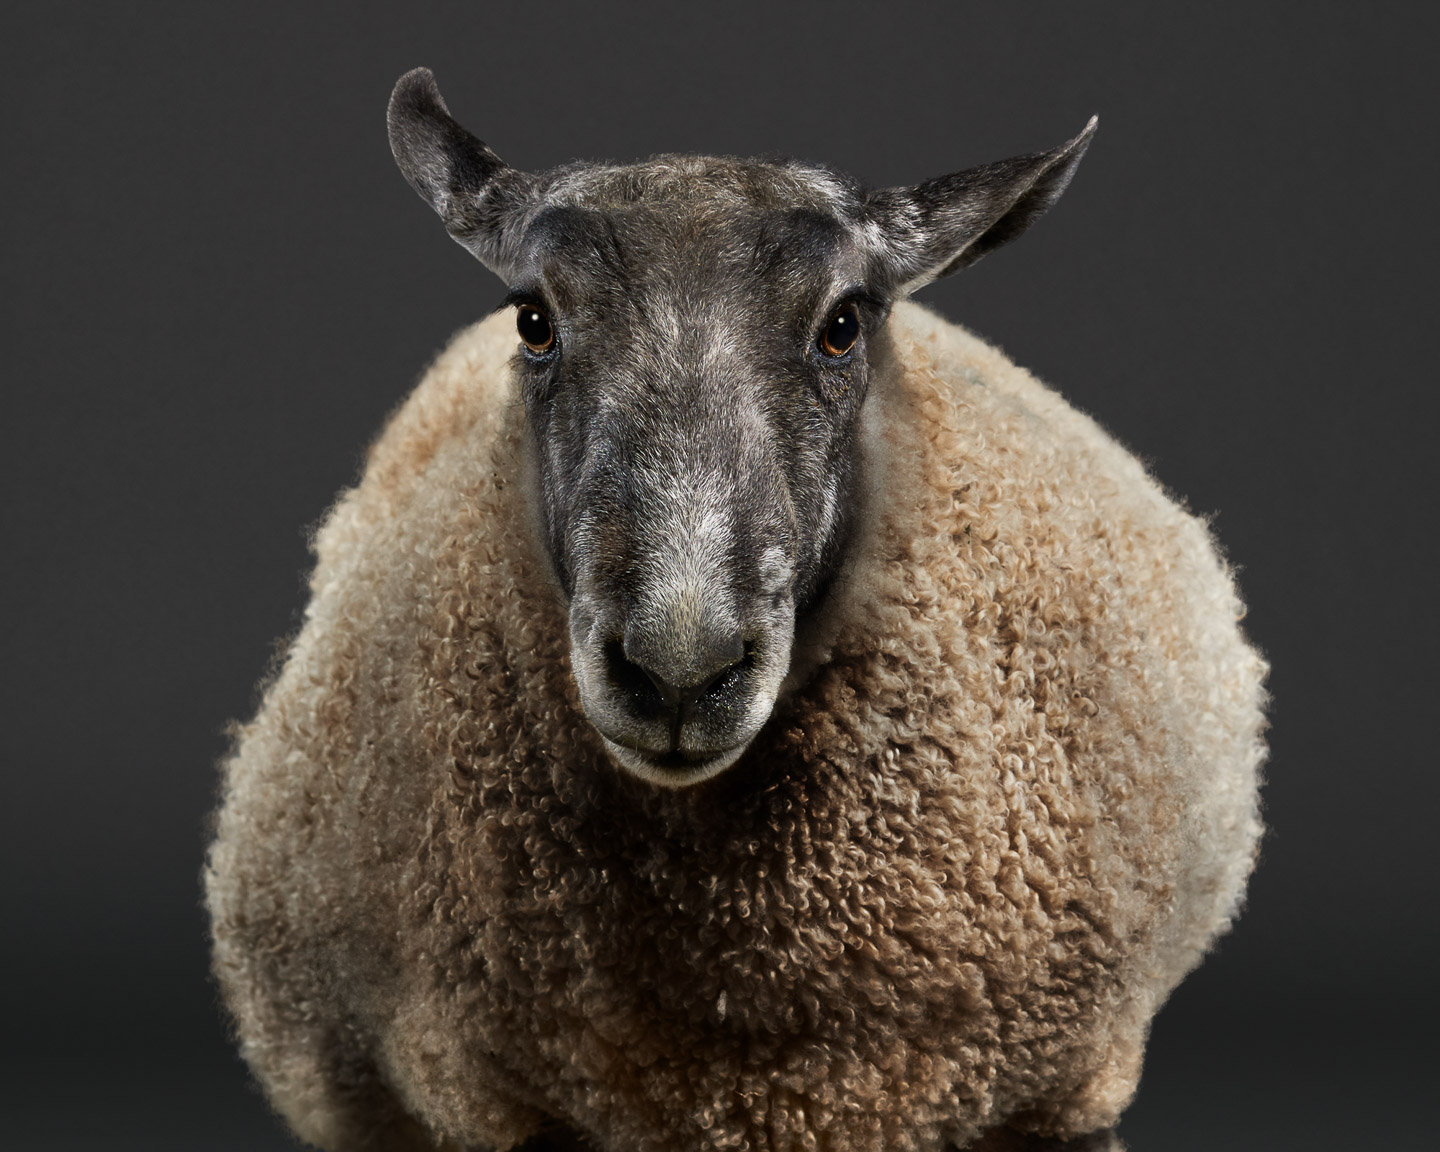 Faulkner the Bluefaced Leicester Ram sheep